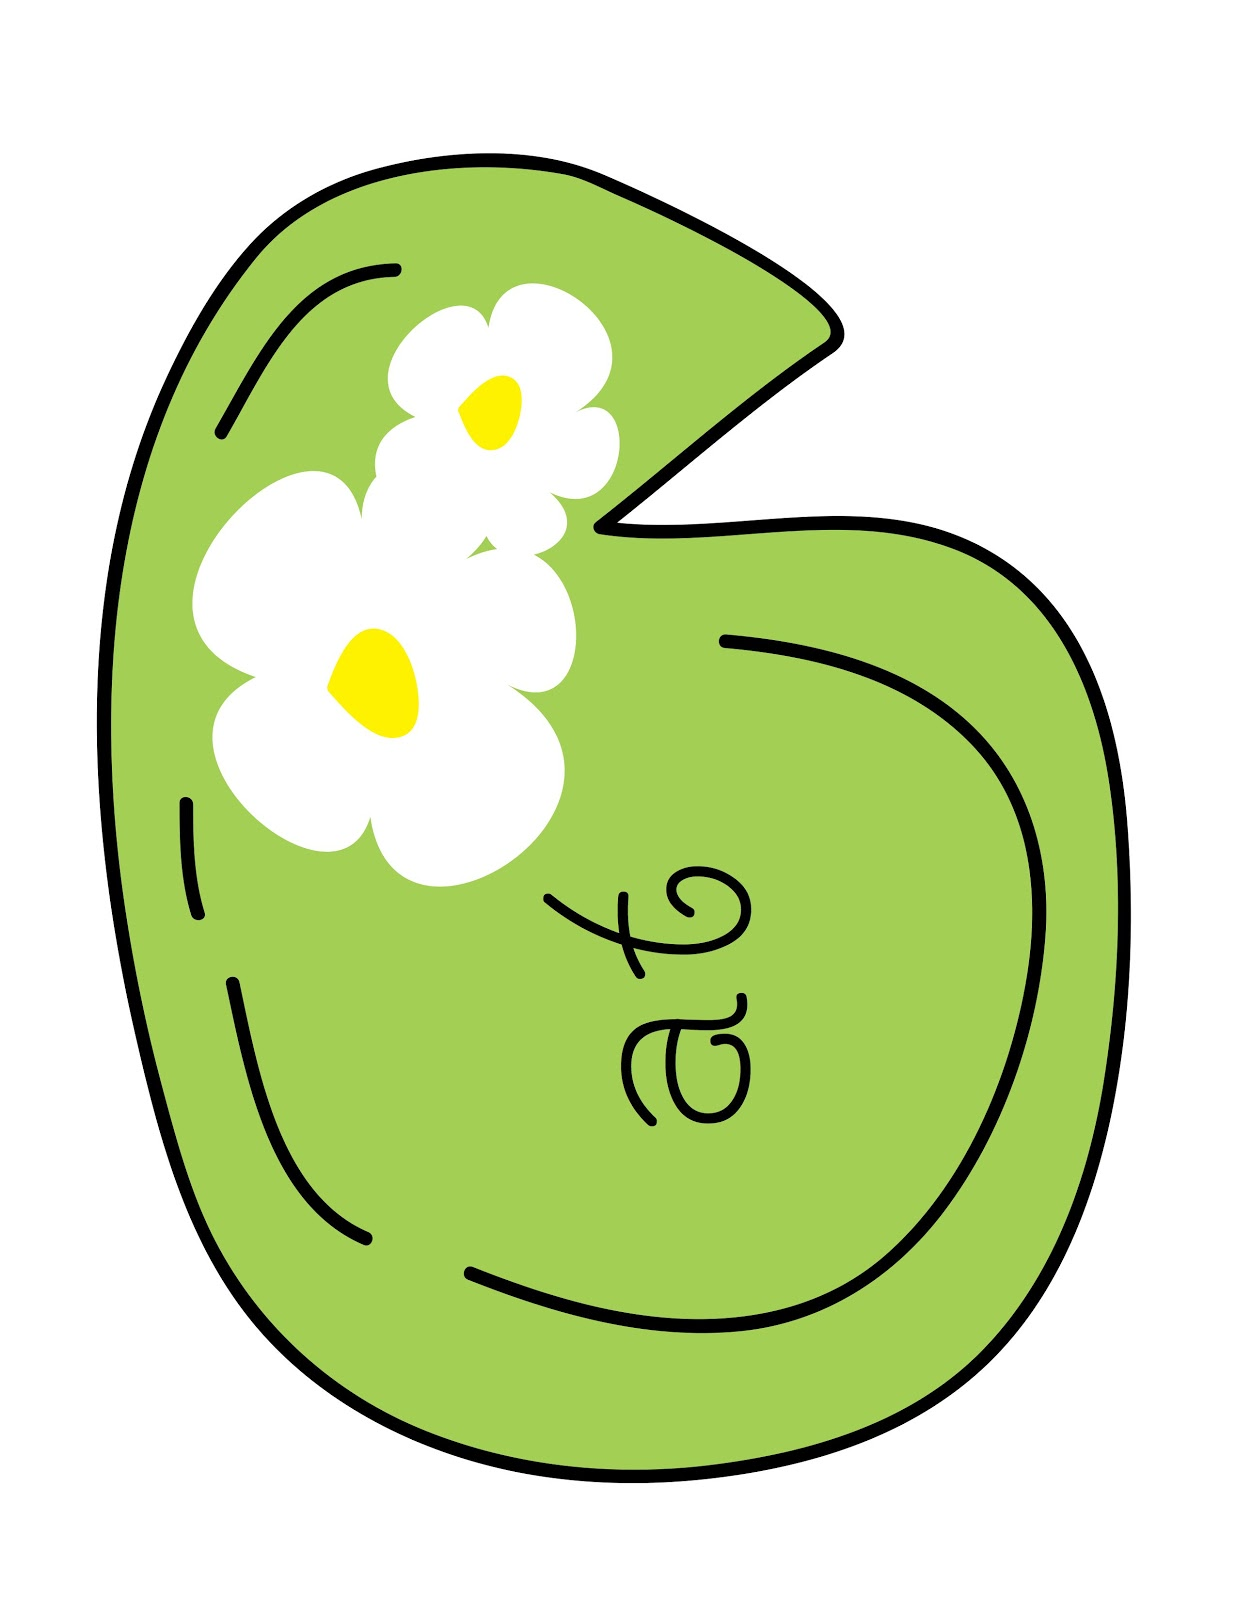 Images For Lily Pad Clip Art-Images For Lily Pad Clip Art-7